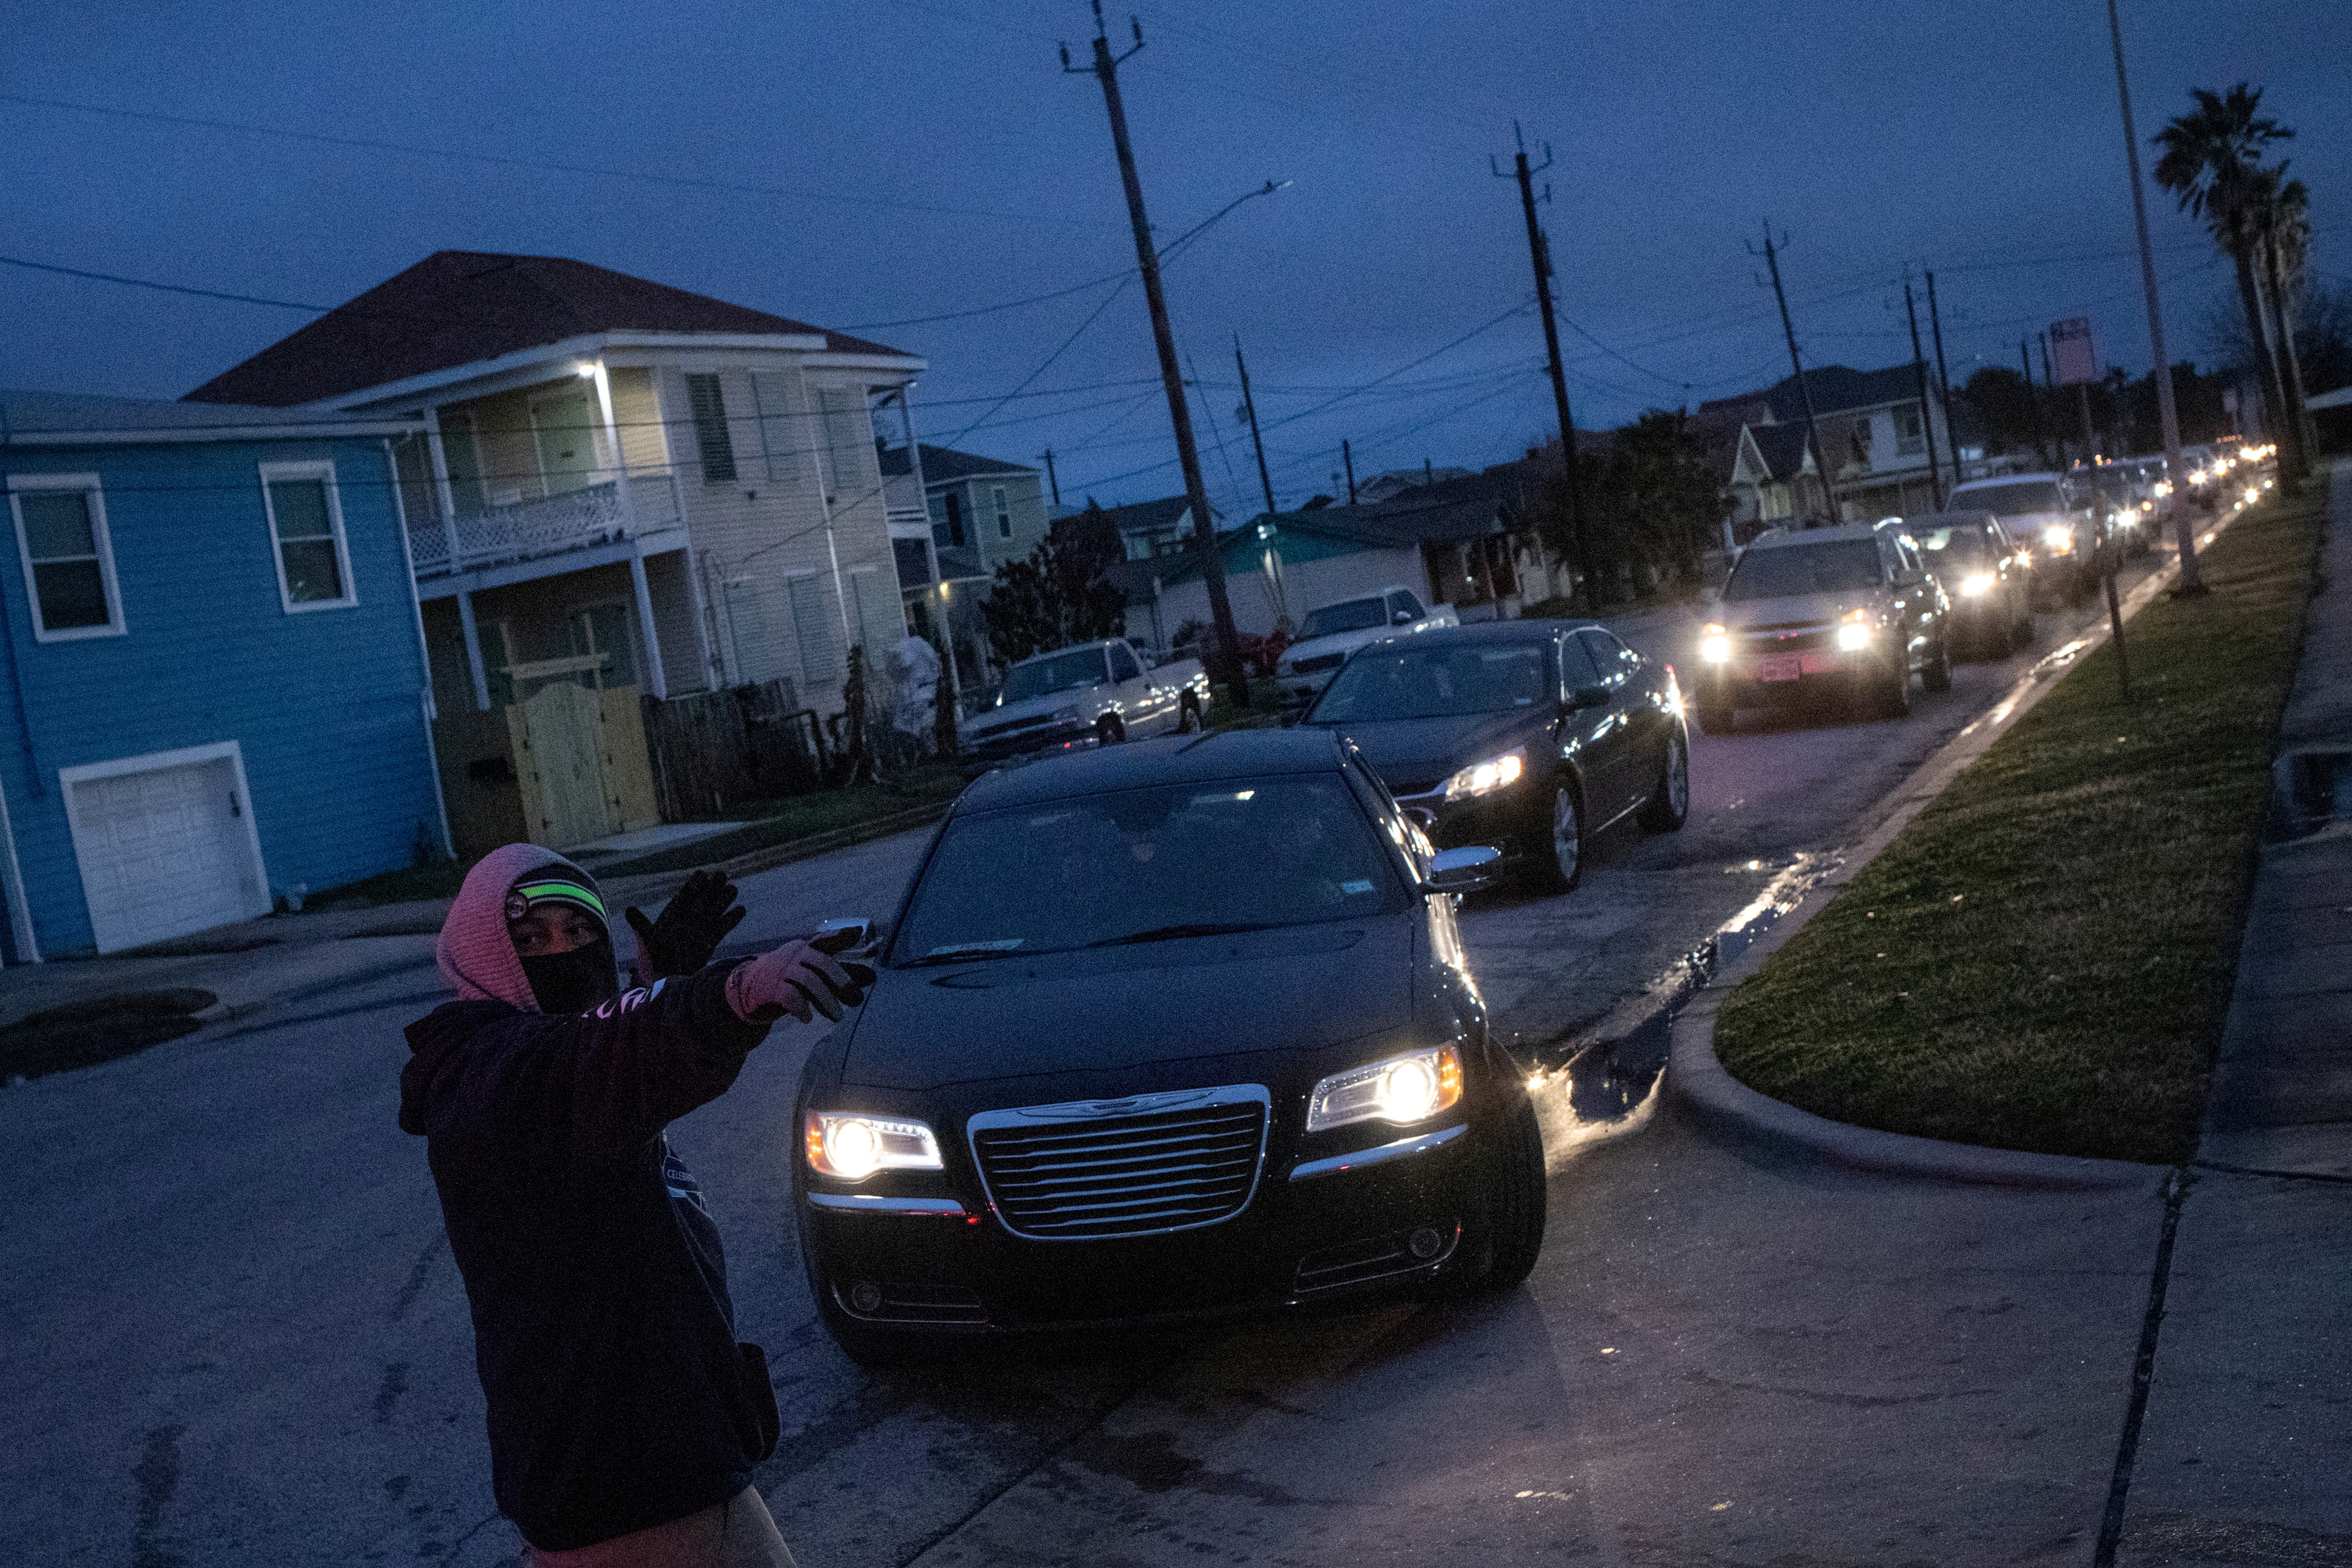 Residents line up in their vehicles to enter a warming center and shelter after record-breaking winter temperatures, as local media reports most residents are without electricity, in Galveston, Texas, U.S., February 17, 2021. REUTERS/Adrees Latif